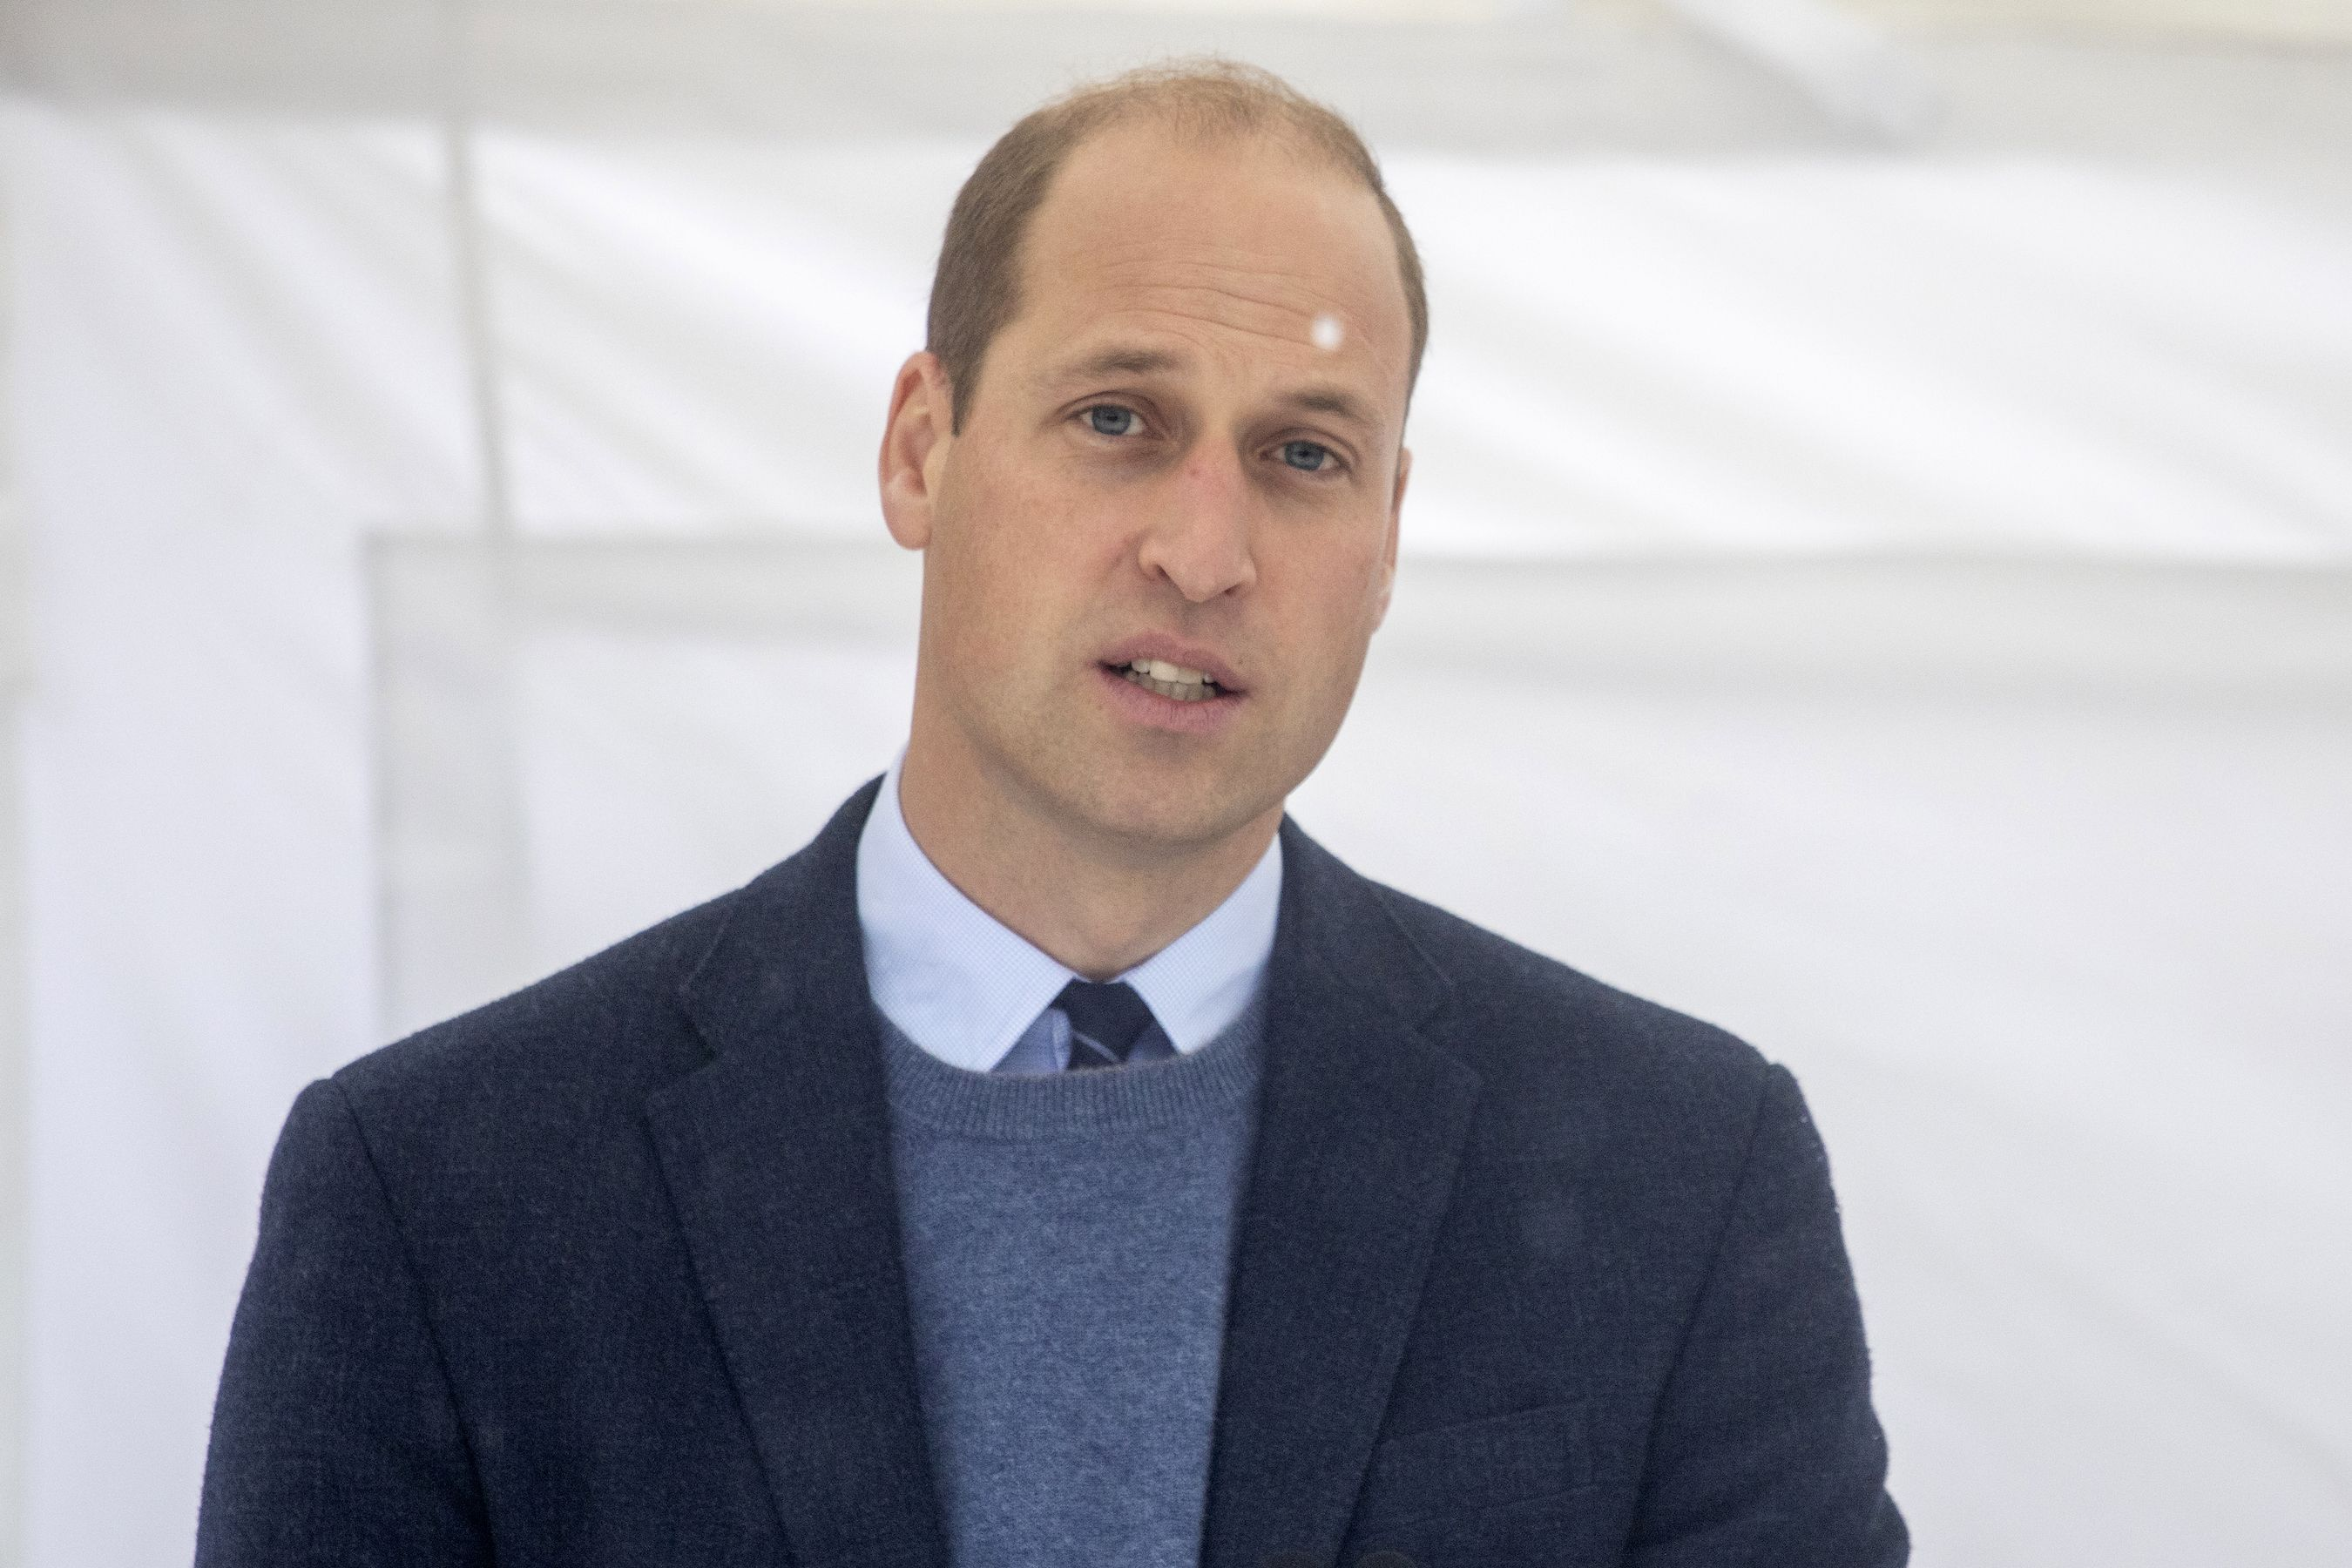 Prince William Revealed the Adorable Family Photos He Keeps in His Office